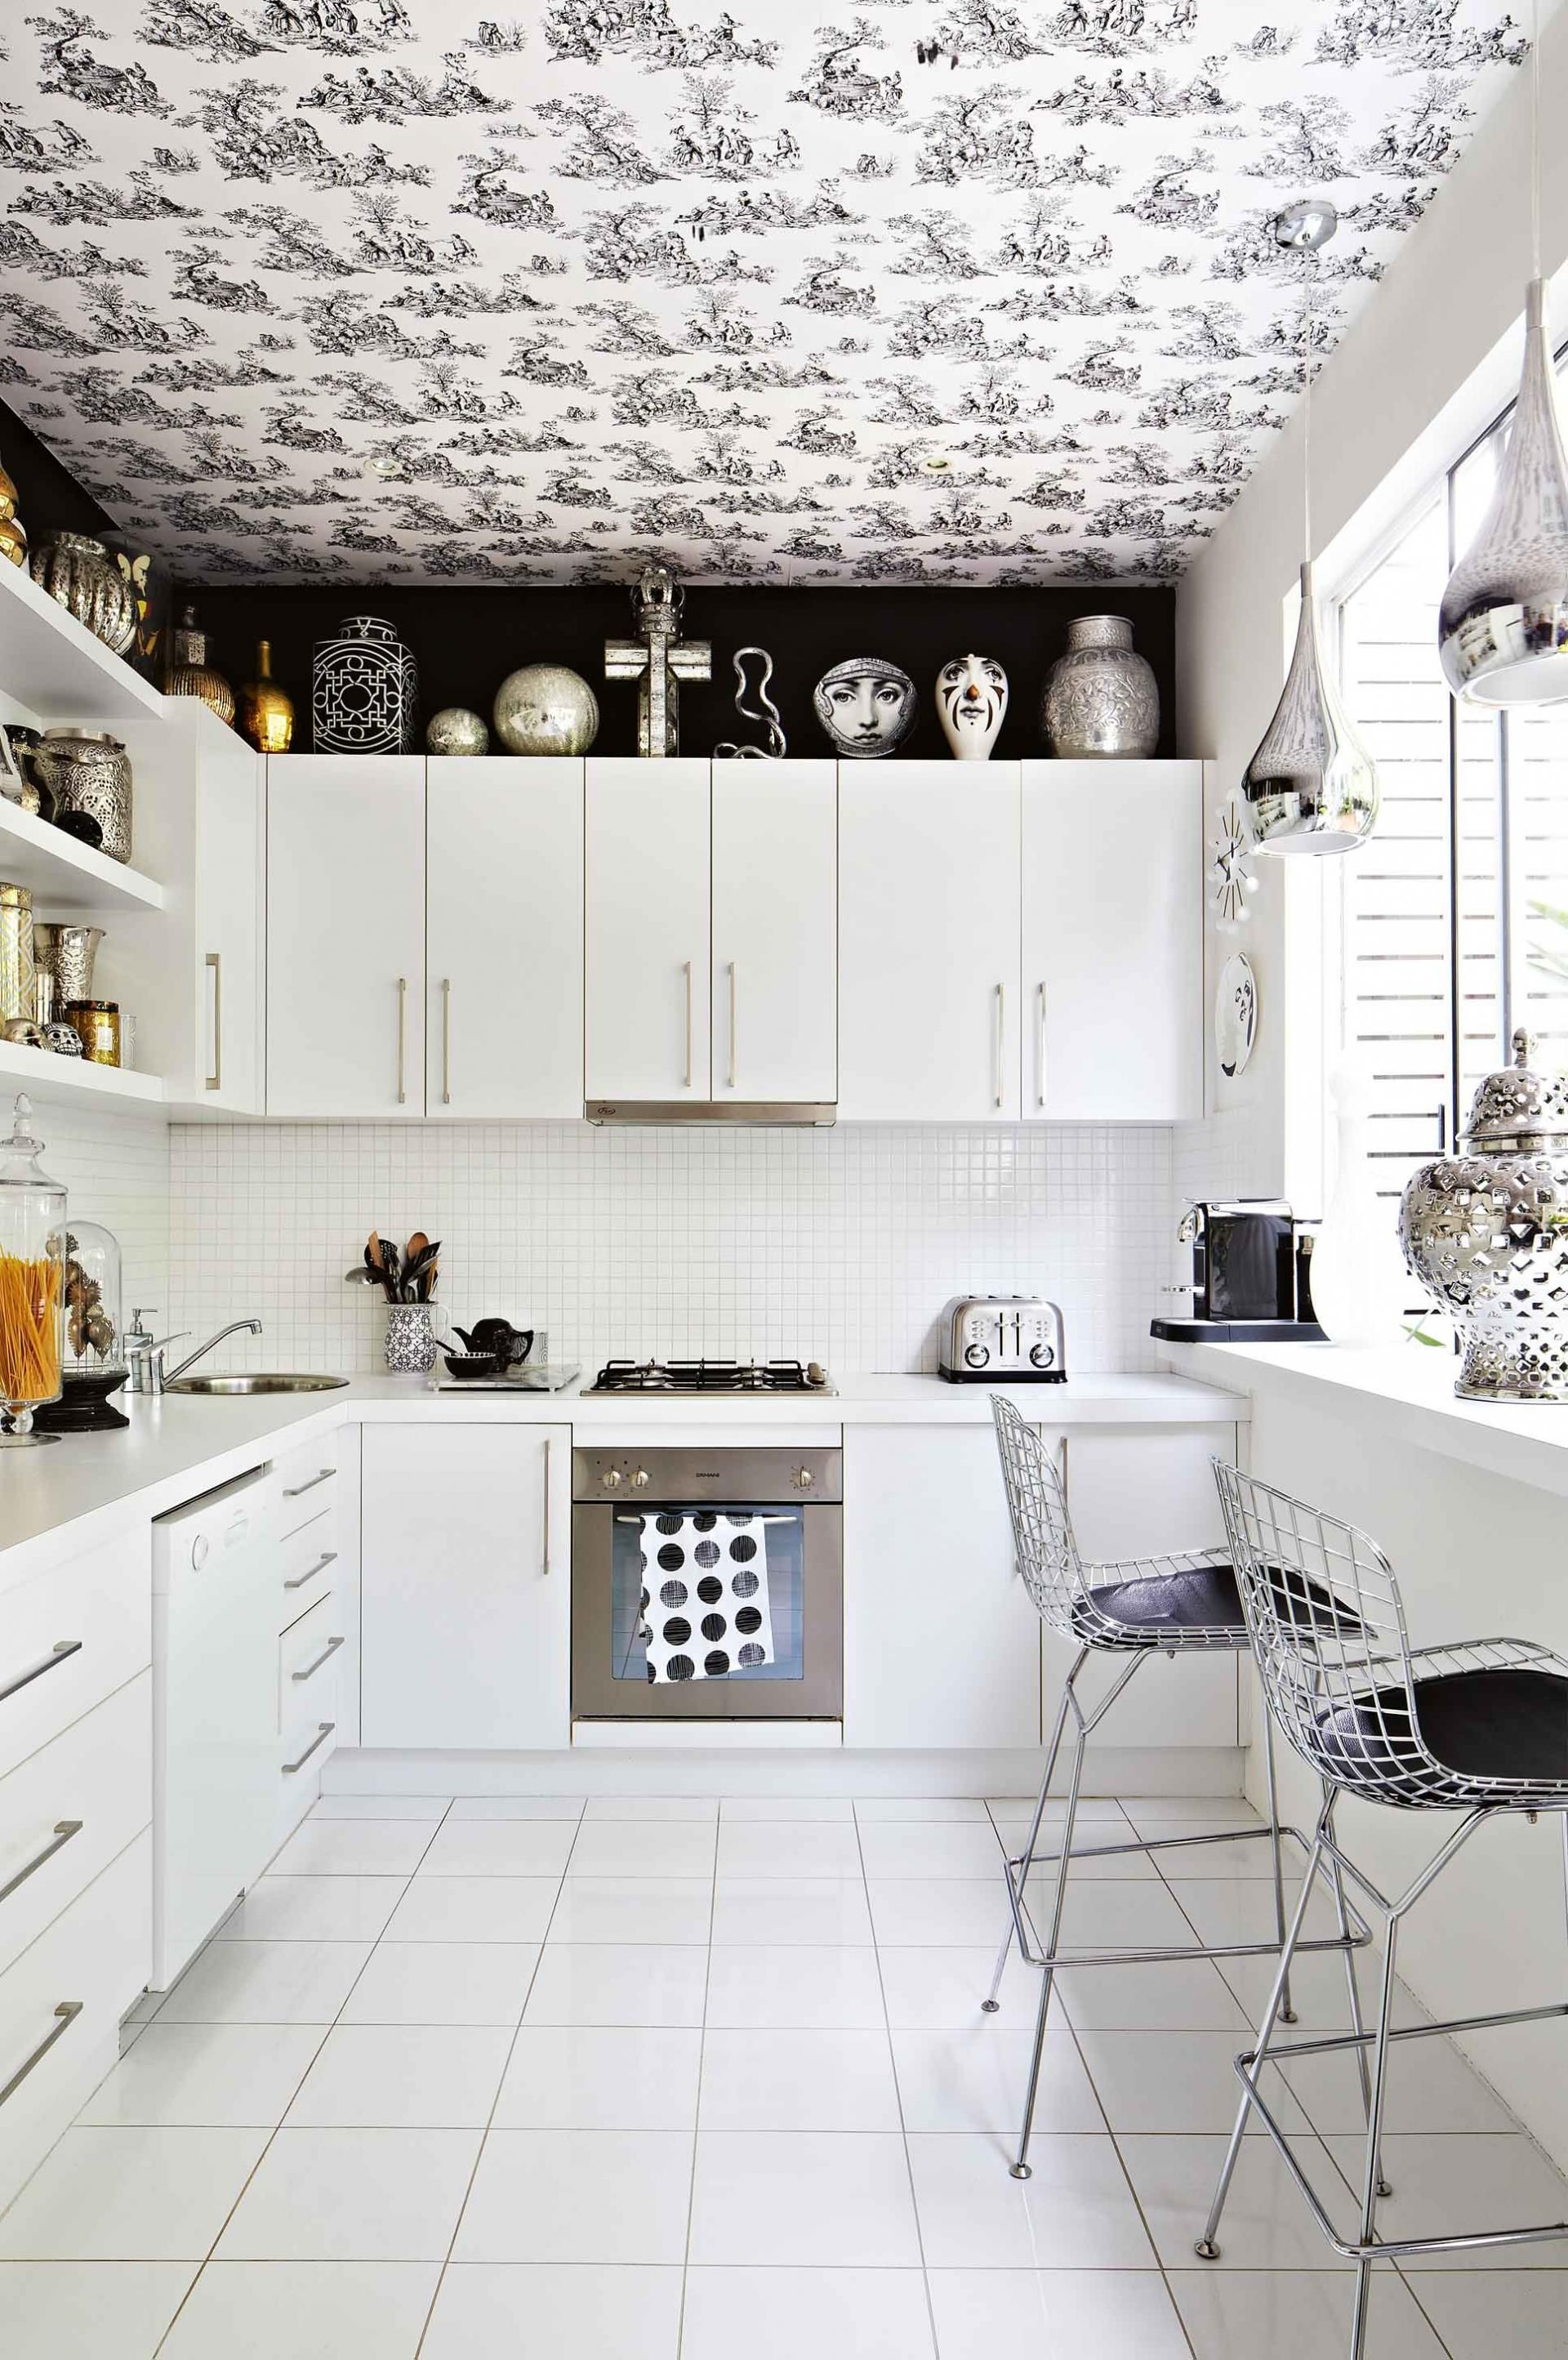 Black White Kitchen Wallpaper Sept14 室内装饰 Kitchen Wallpaper